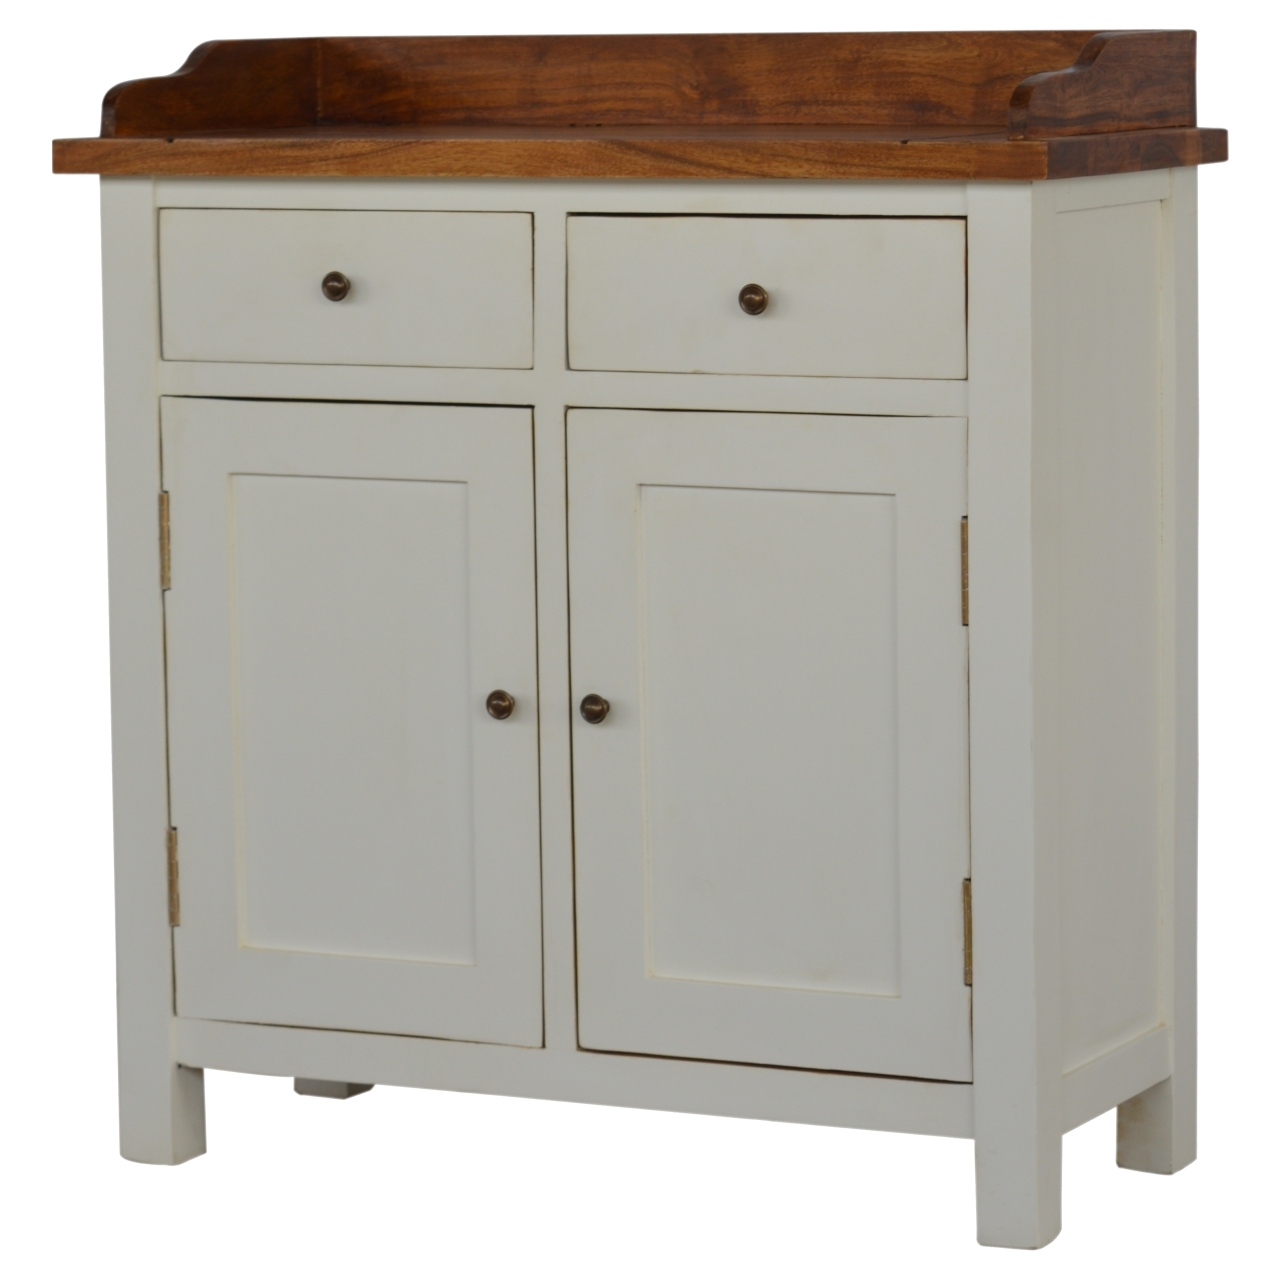 Jasmine 2 Door Sideboard - Japonica Home regarding Acacia Wood 4-Door Sideboards (Image 12 of 30)